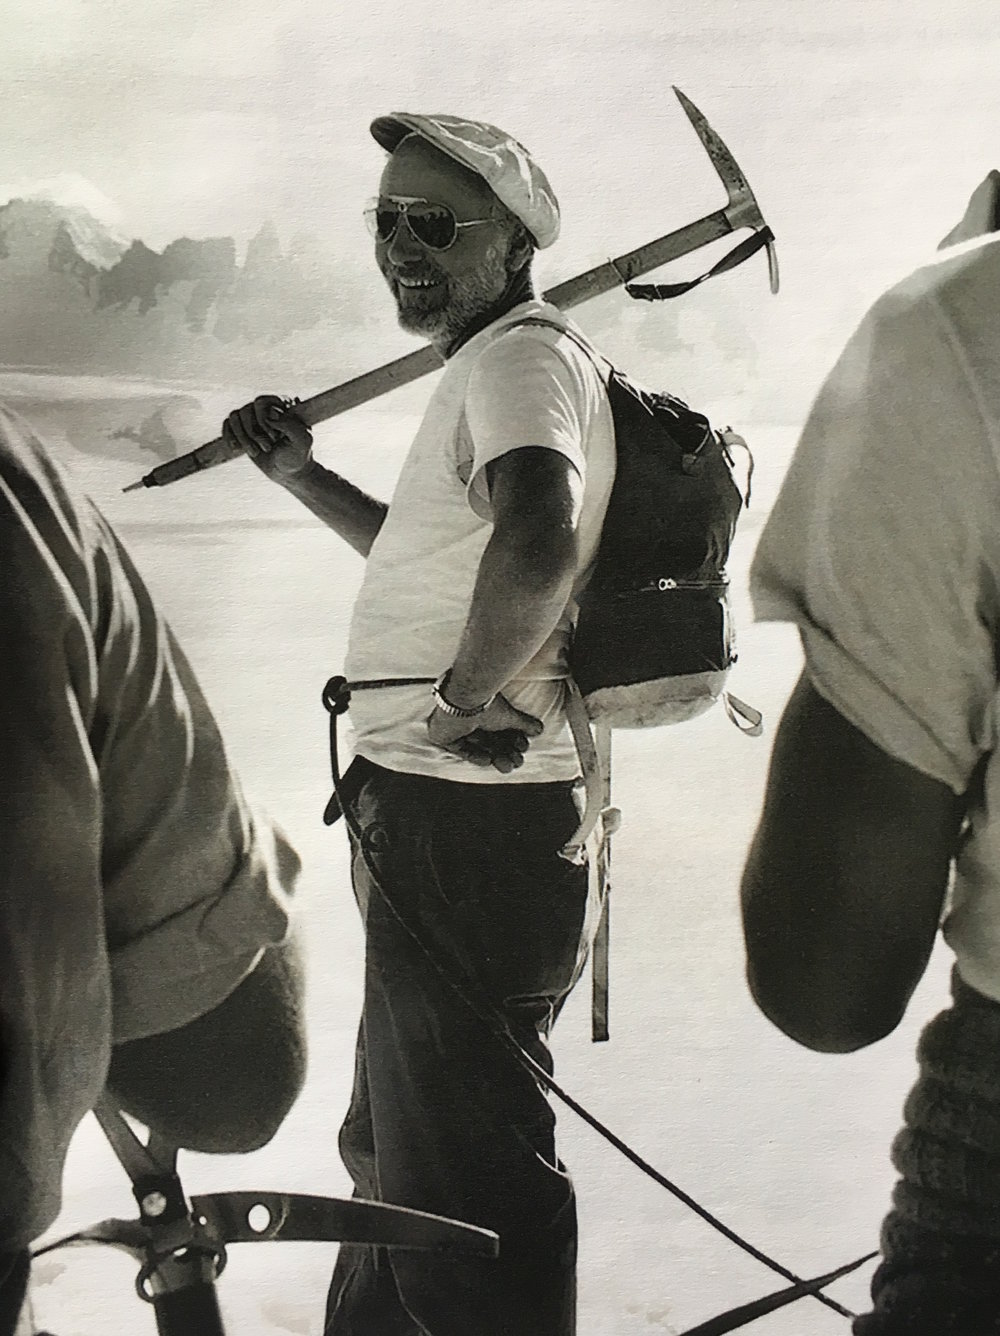 Maynard Miller, Taku Glacier, [year unknown]